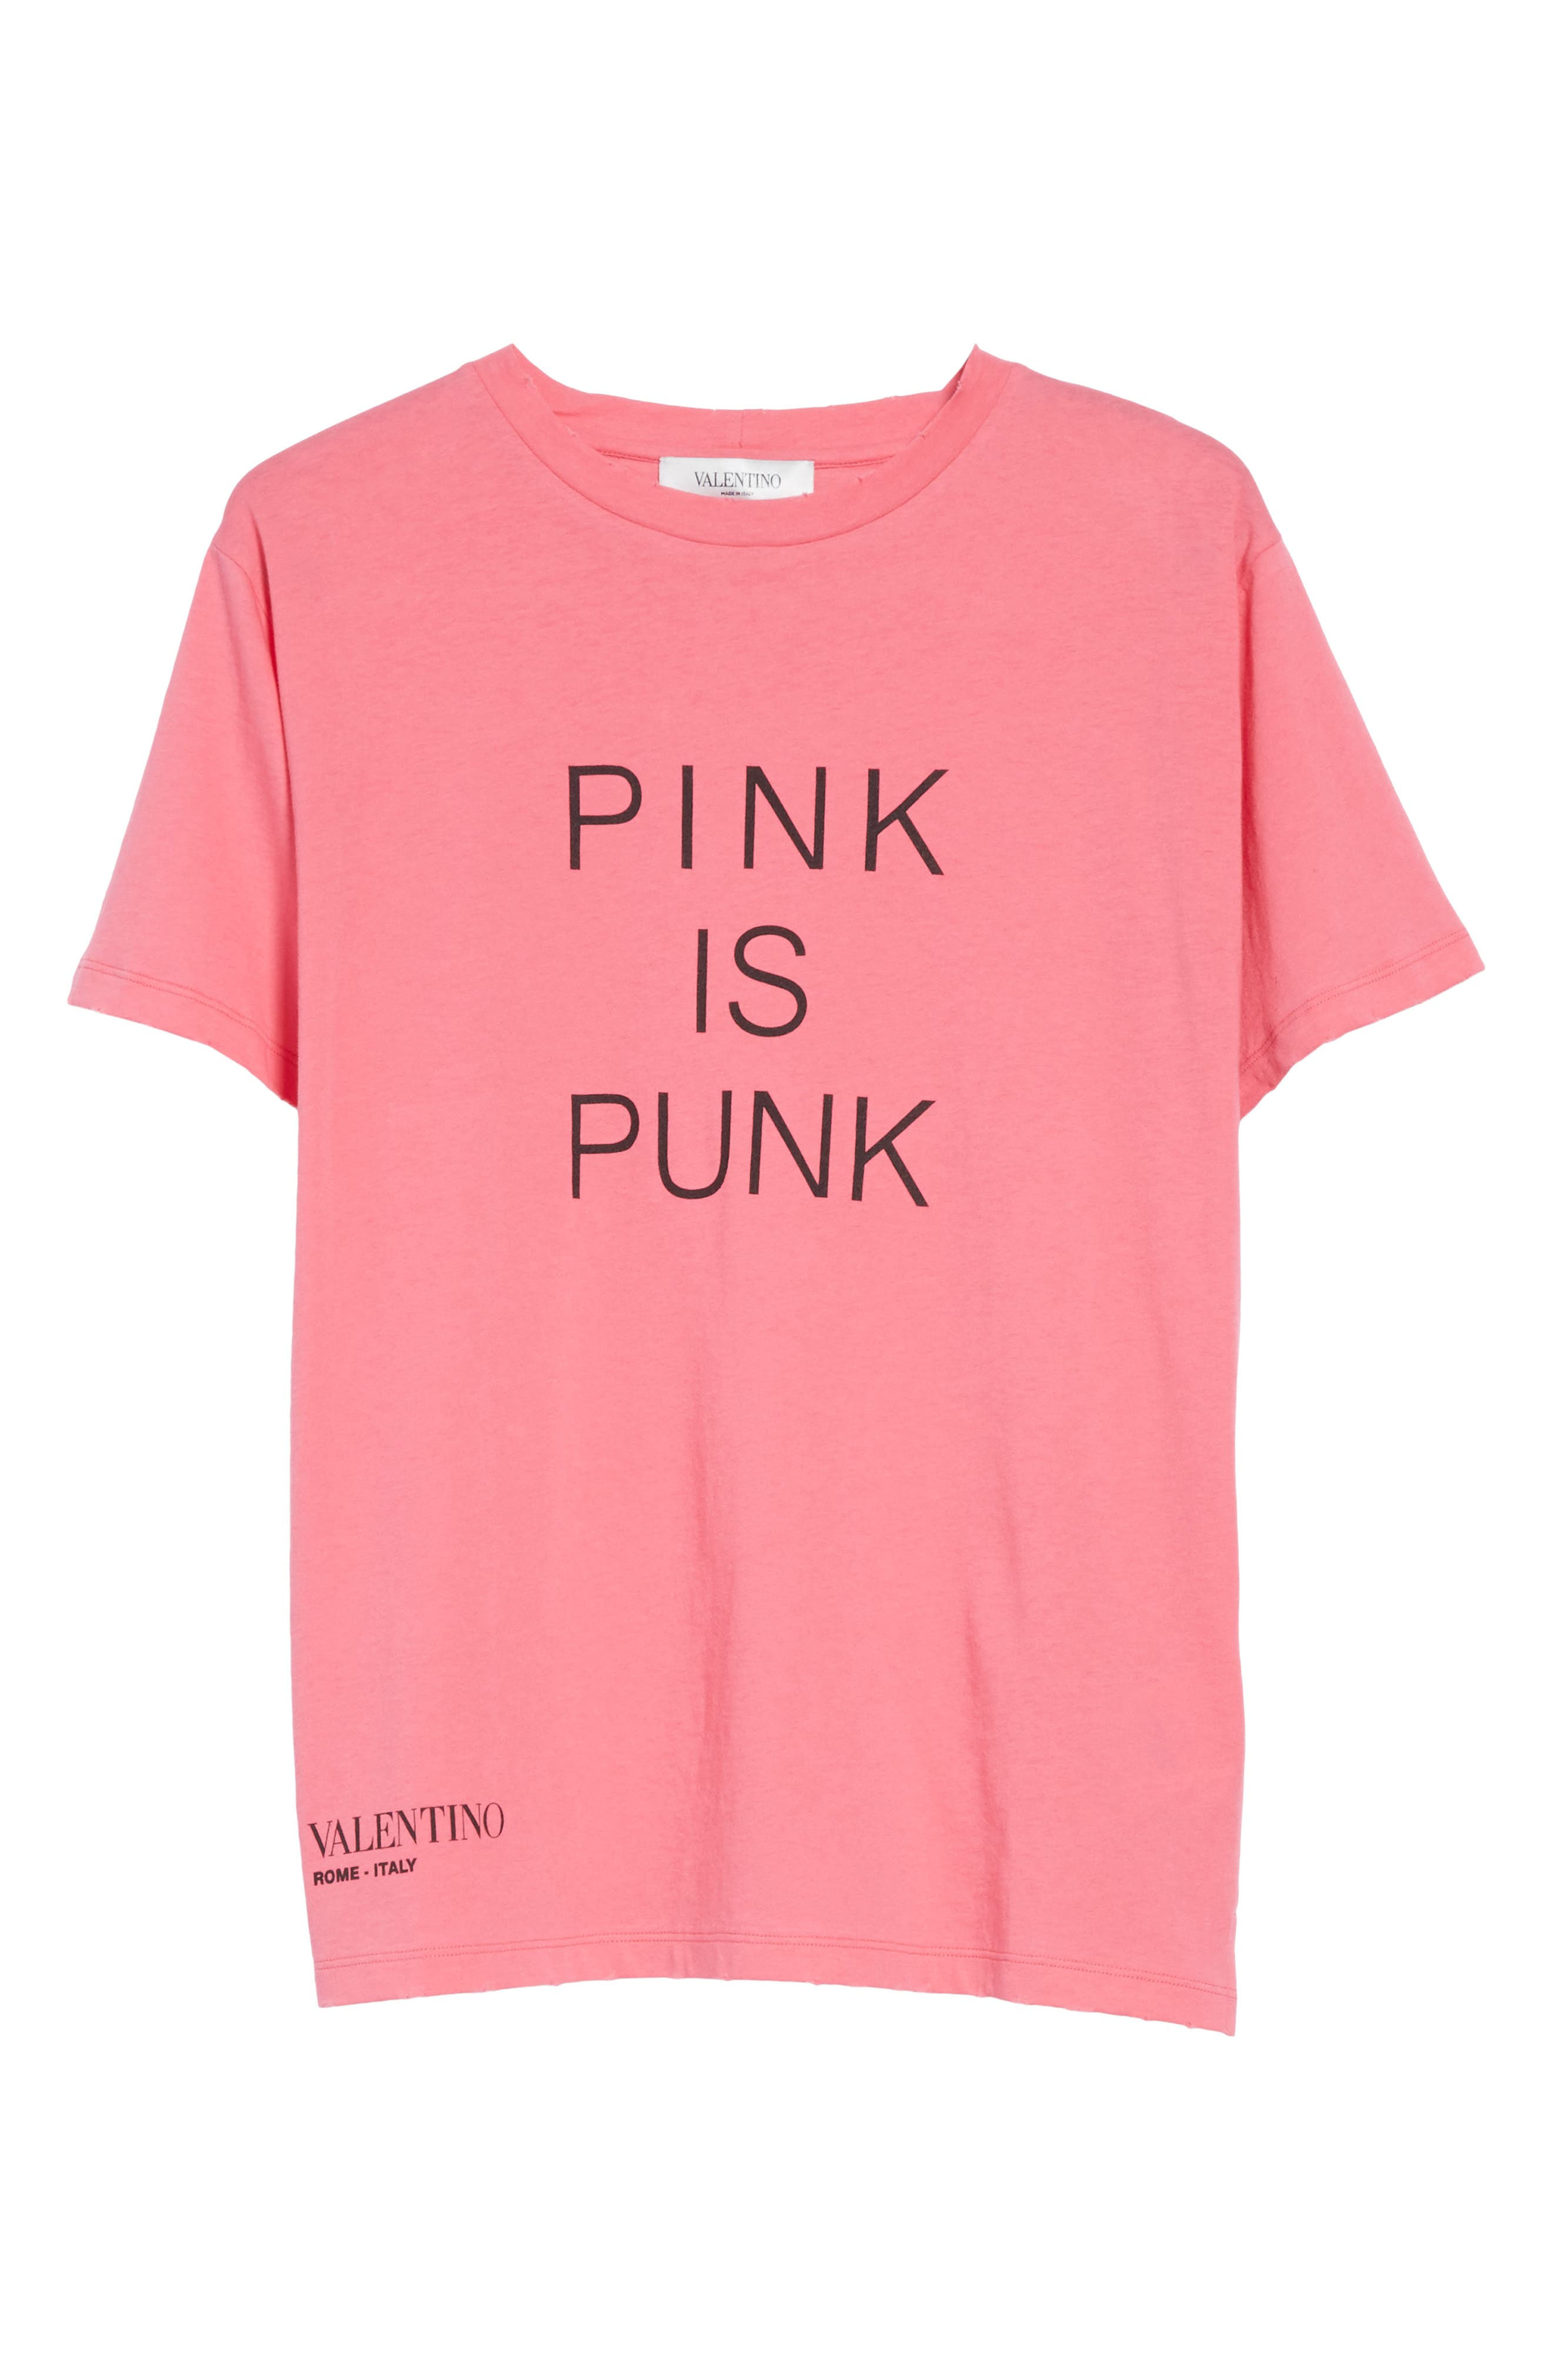 Pink Is Punk Cotton Tee,                             Alternate thumbnail 6, color,                             664